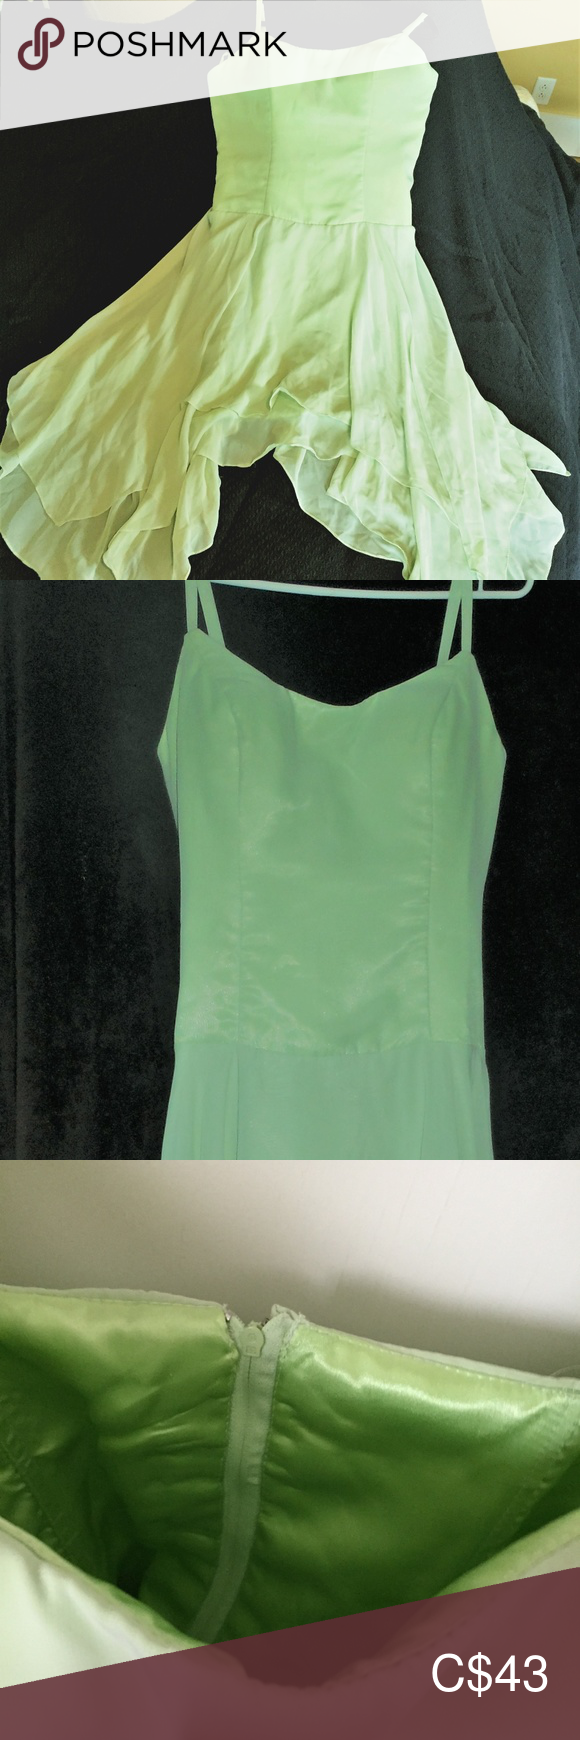 COCKTAIL DRESS - Sage Green,knee, spaghetti strap #sagegreendress COCKTAIL DRESS - Sage Green,knee, spaghetti strap Never worn - Bought for a bridesmaid dress but it got cancelled. No defects. Size L. This seasons popular Sage Green  , well constructed with boning in bodice for shape, Shark tooth hemline starting at knee. New, Size L. Dresses Asymmetrical #sagegreendress COCKTAIL DRESS - Sage Green,knee, spaghetti strap #sagegreendress COCKTAIL DRESS - Sage Green,knee, spaghetti strap Never worn #sagegreenbridesmaiddresses